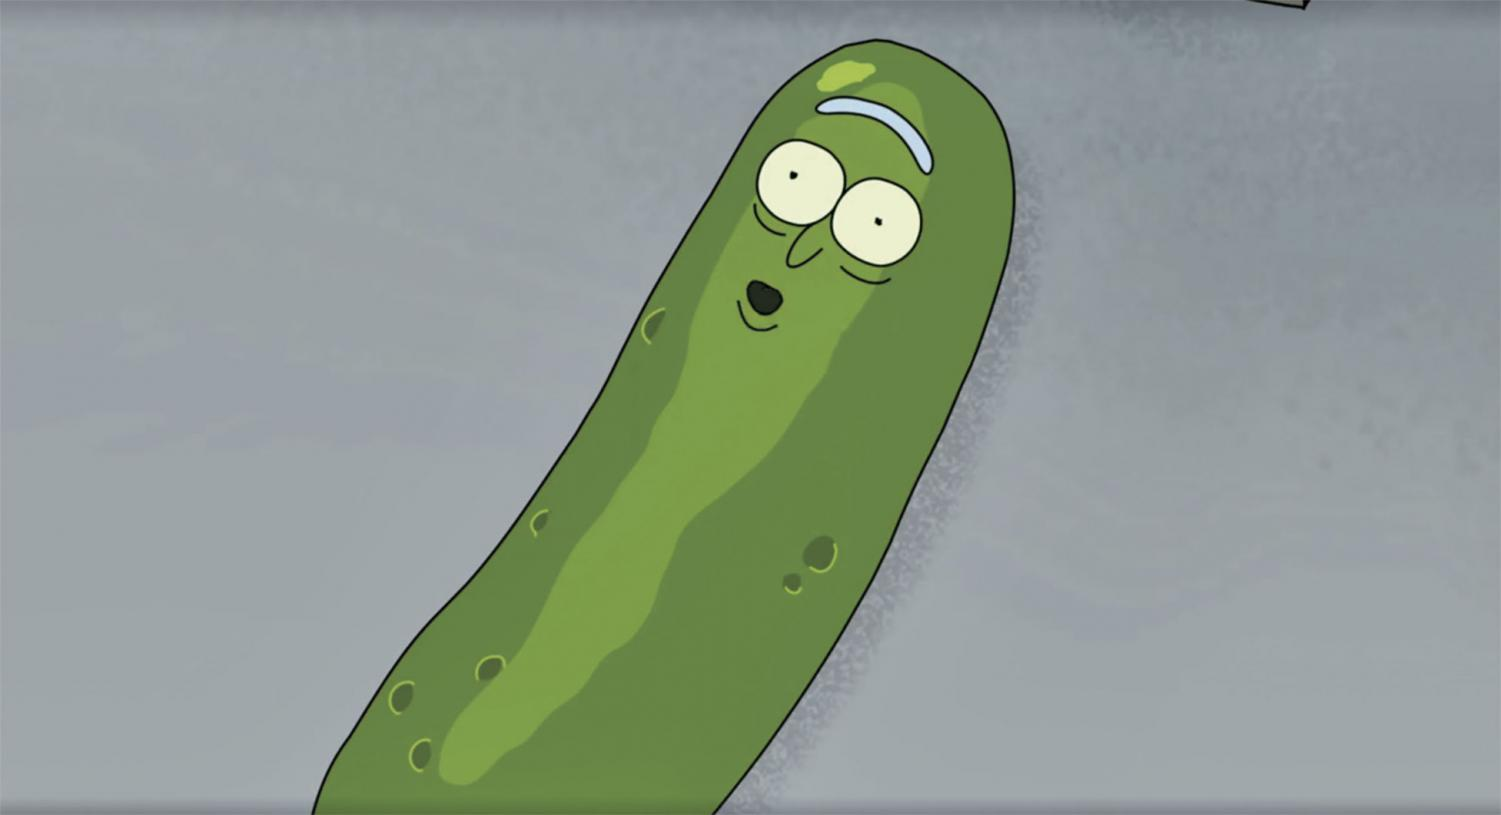 Pickle Rick (above) remains the best joke of the new season.